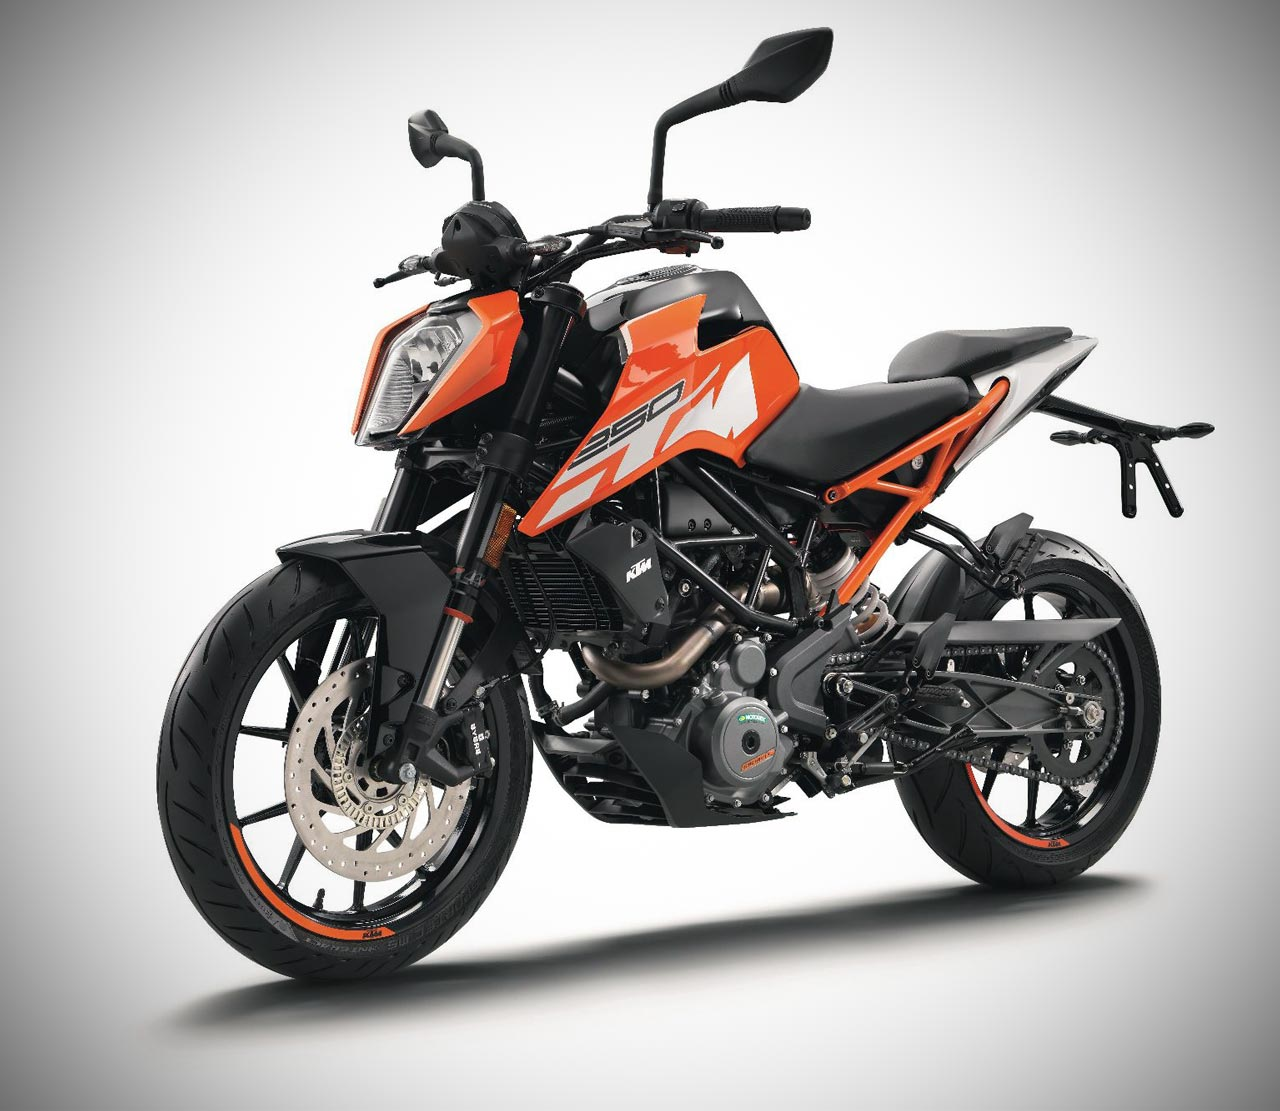 Ktm Duke 690 Price >> 2017 KTM Duke 250 launched in India at INR 1.73 Lakhs | AUTOBICS